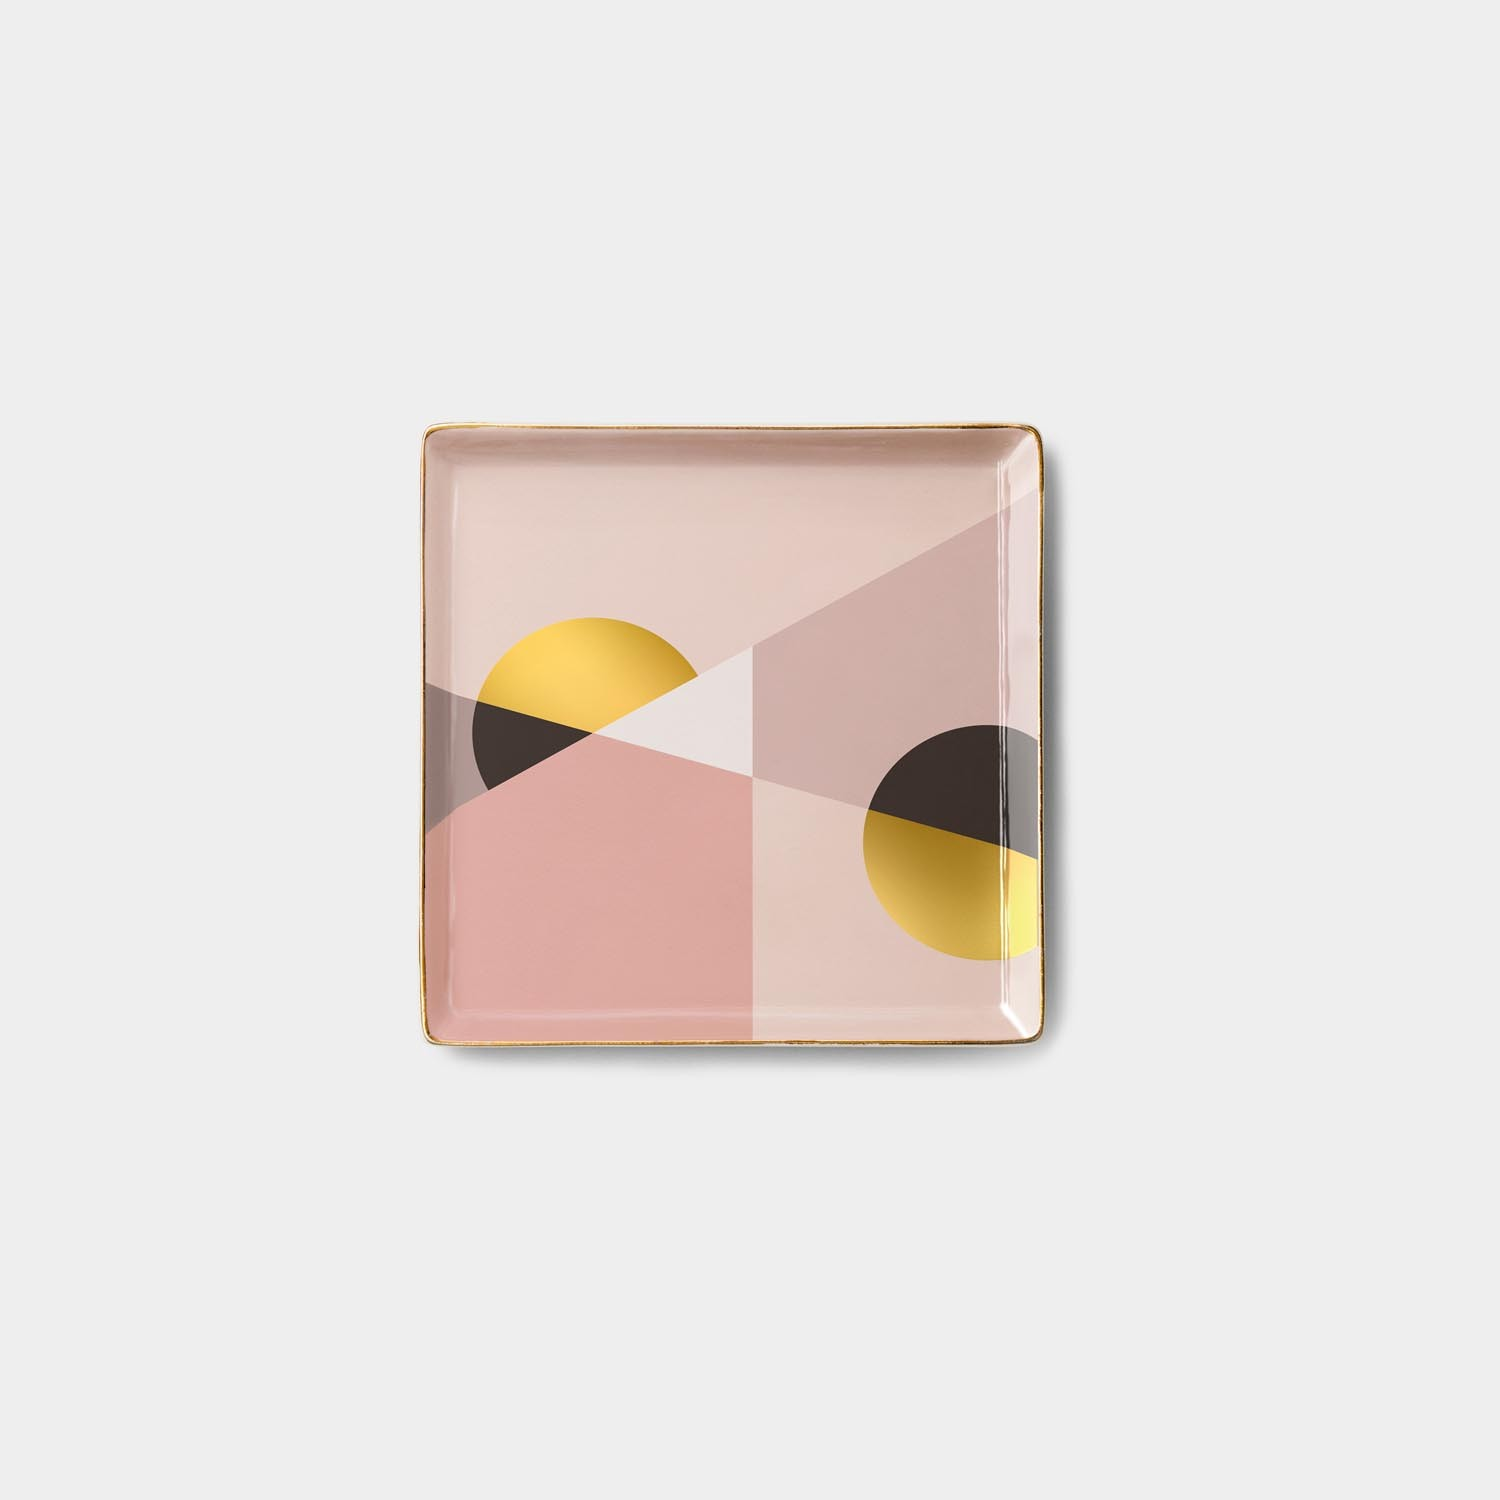 Catchall Ceramic Tray Siena Pink